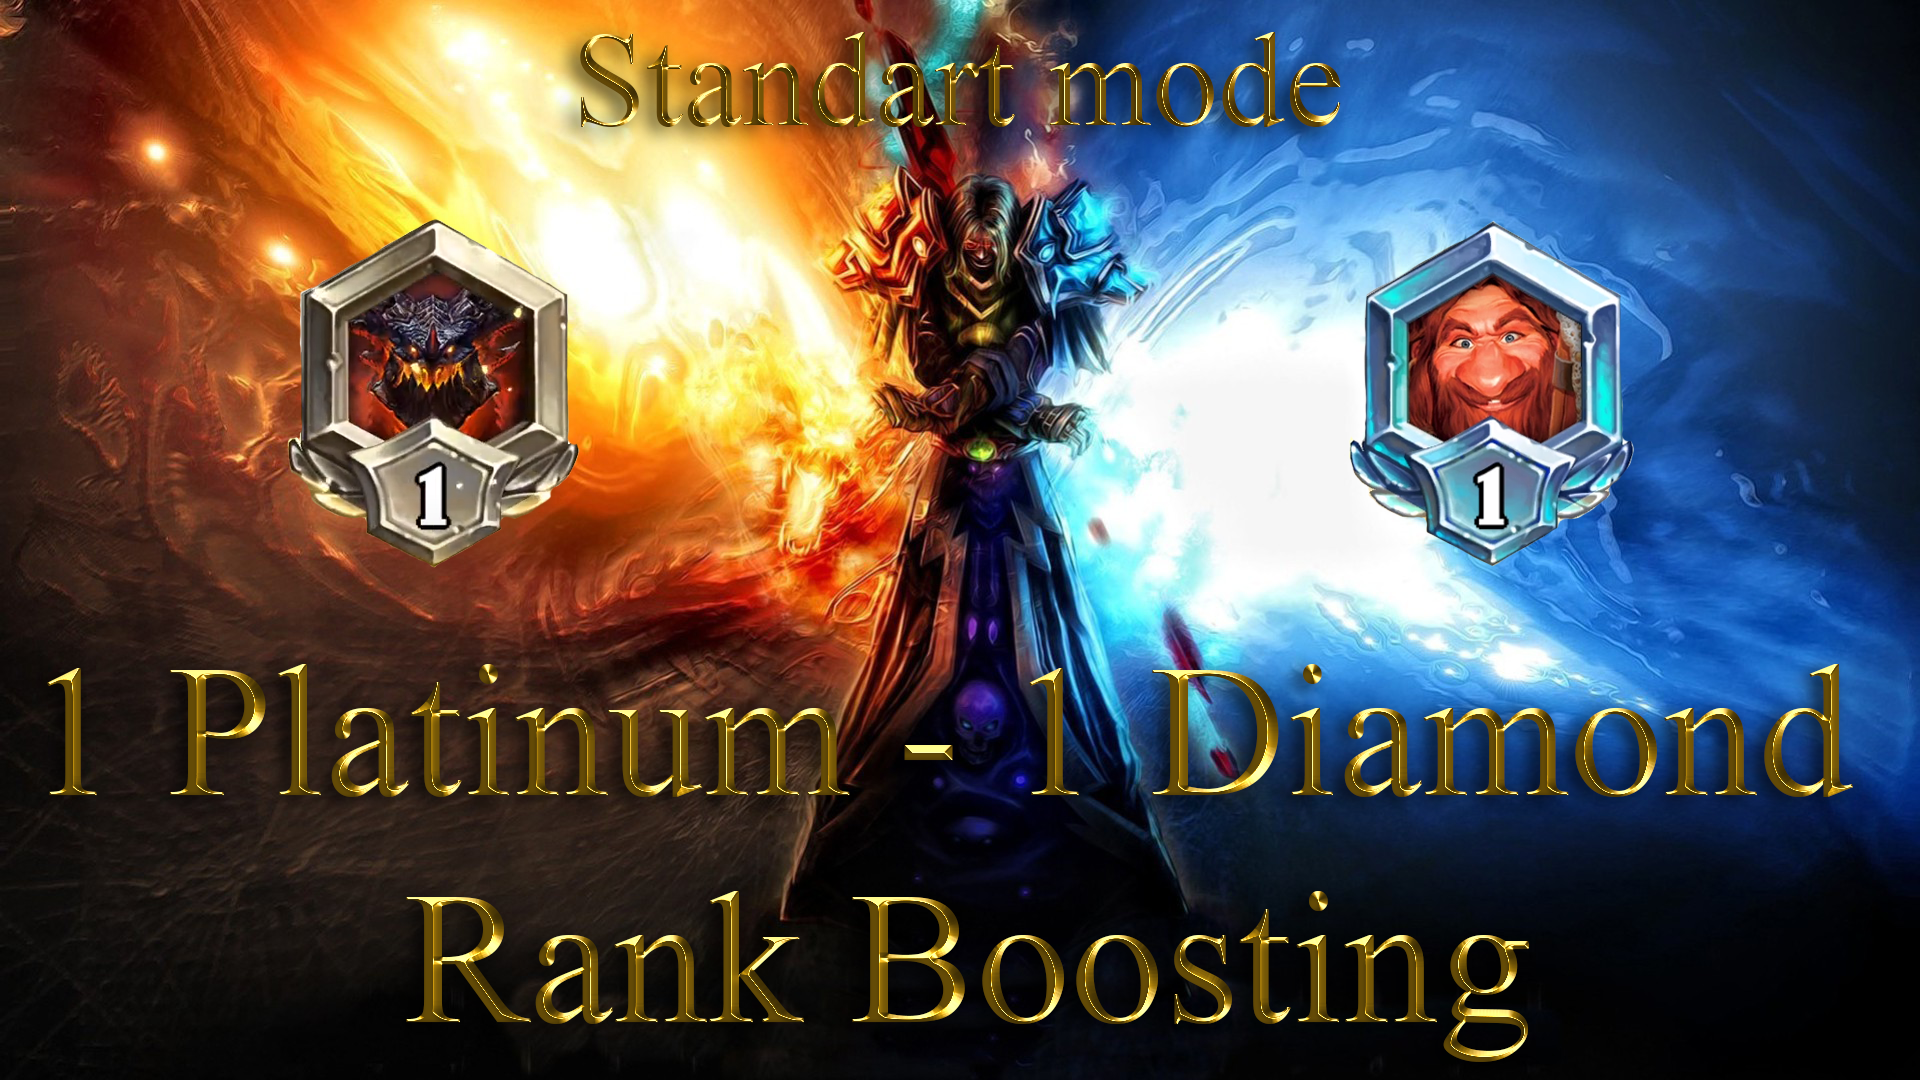 HEARTHSTONE: 1 RANK (PLATINUM) - 1 RANK (DIAMOND) STANDART MODE GBD - e2p.com